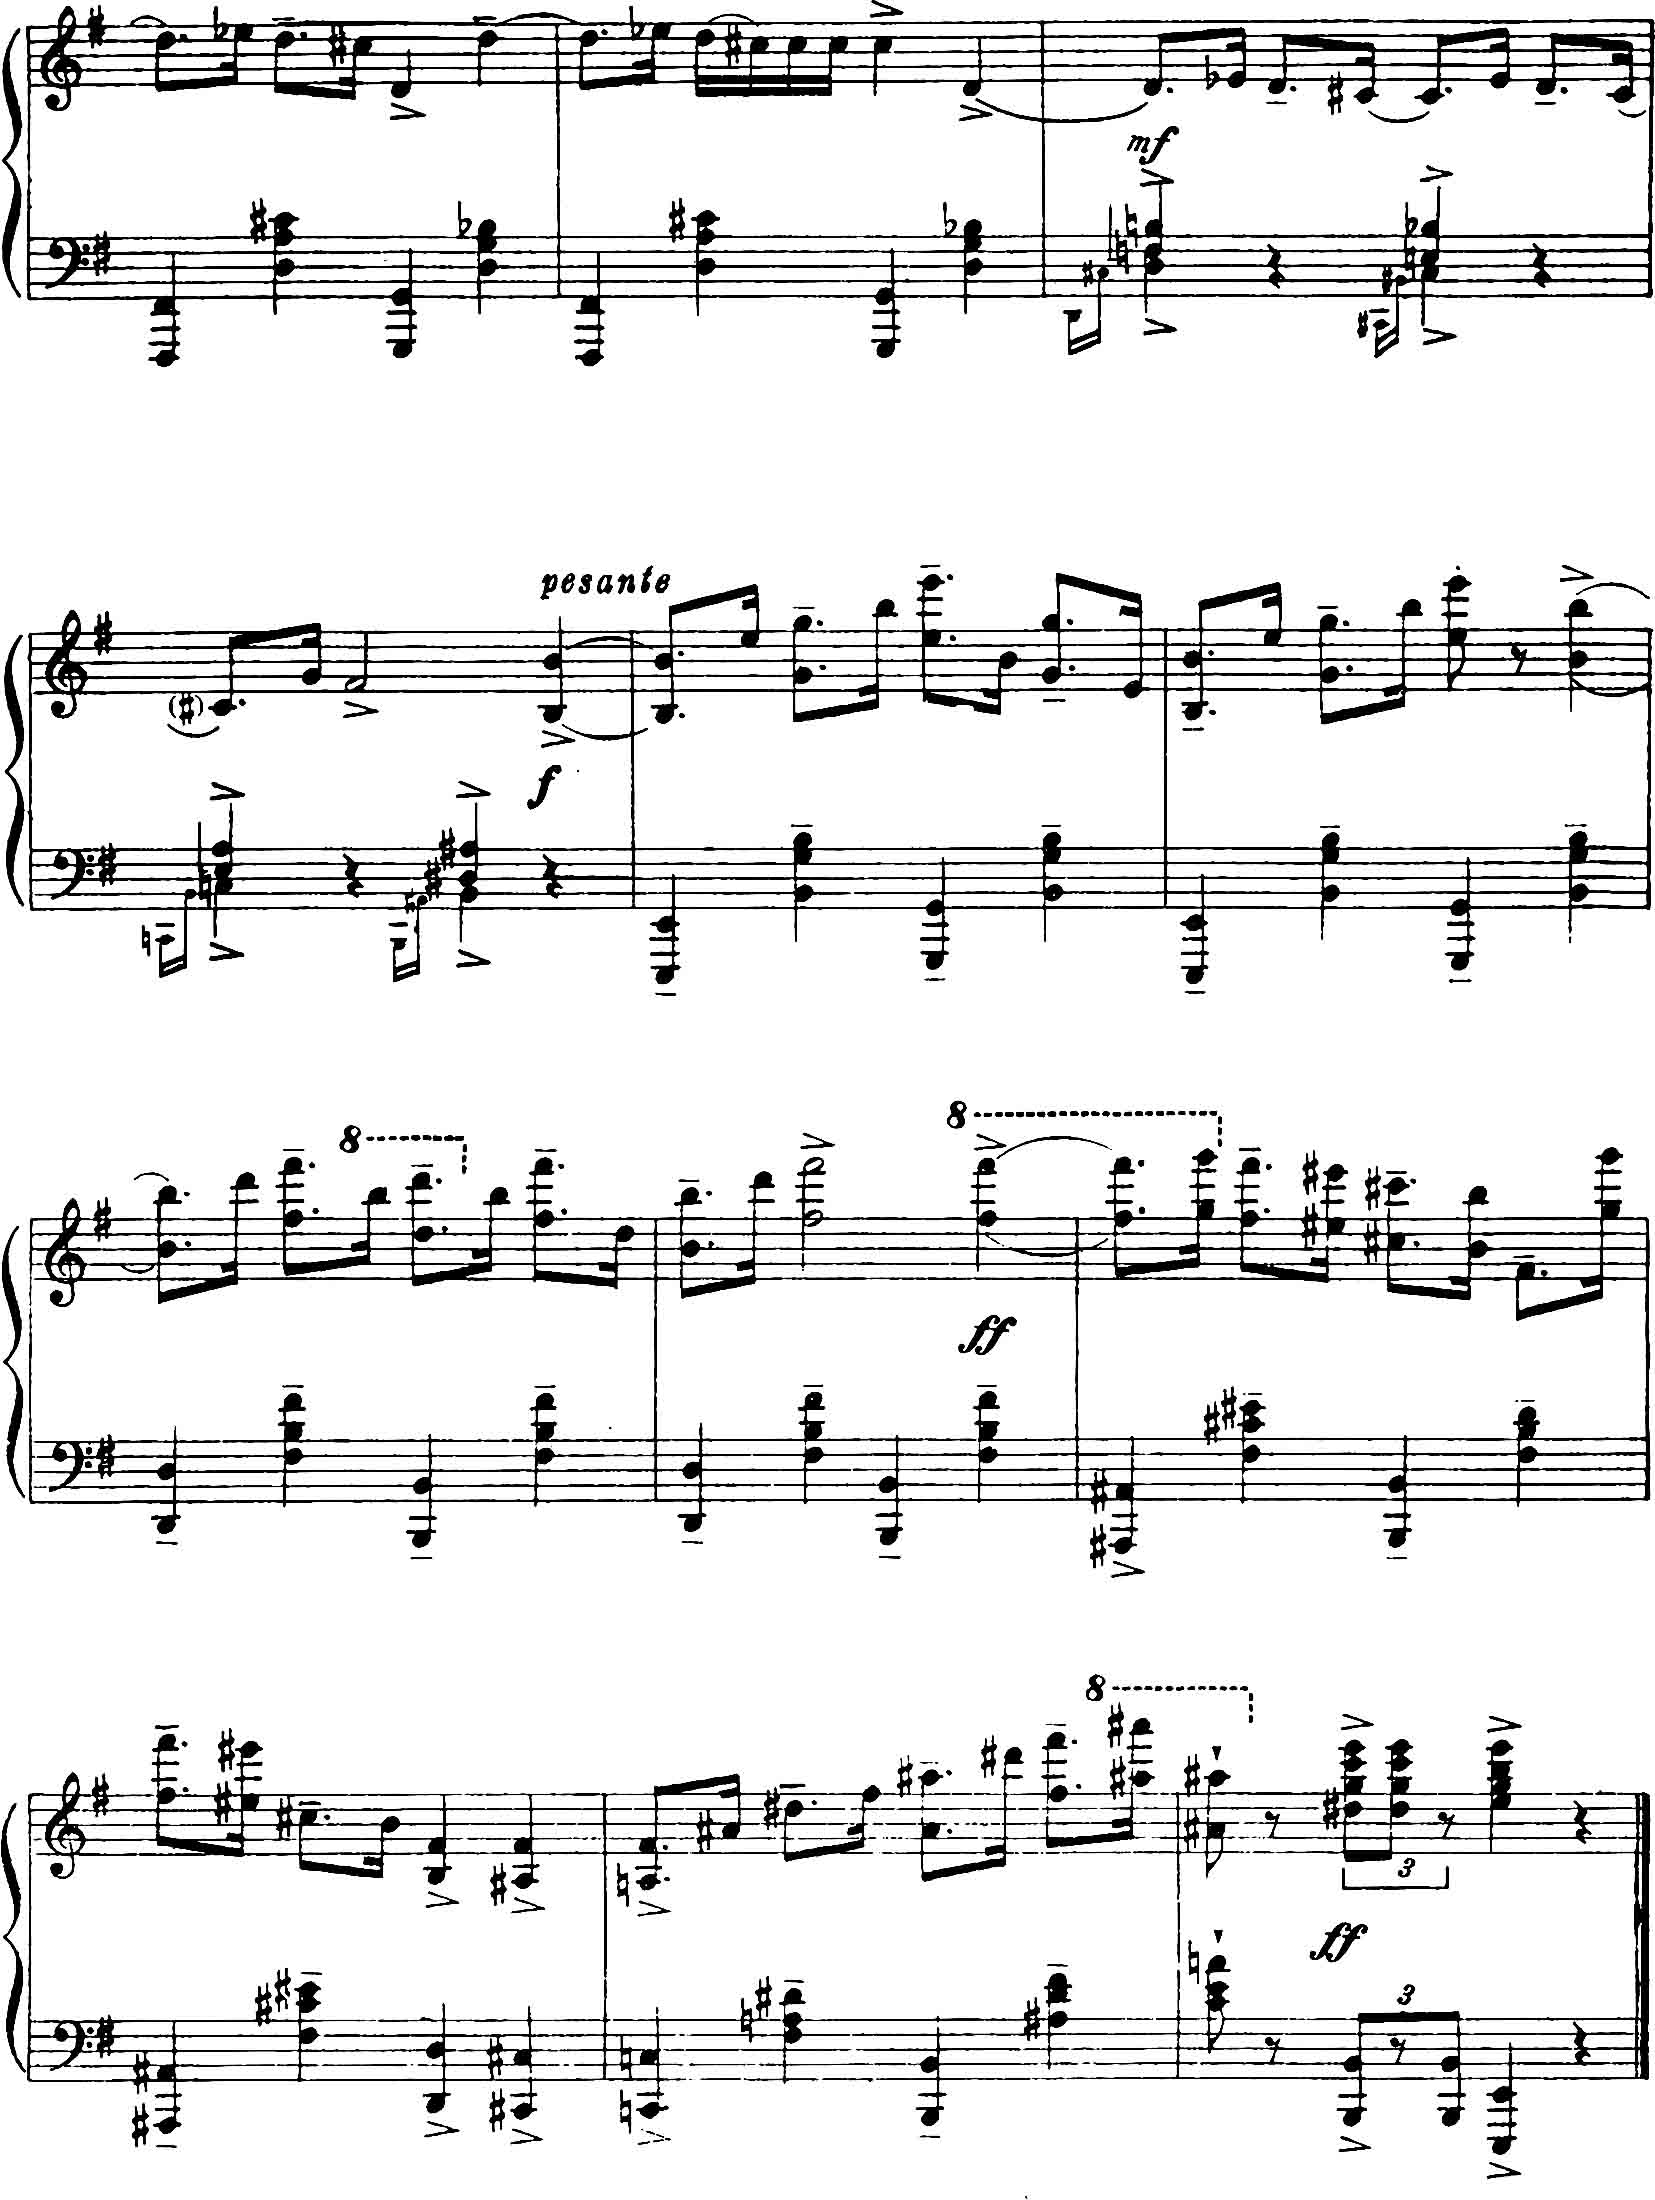 prokofiev montagues and capulets